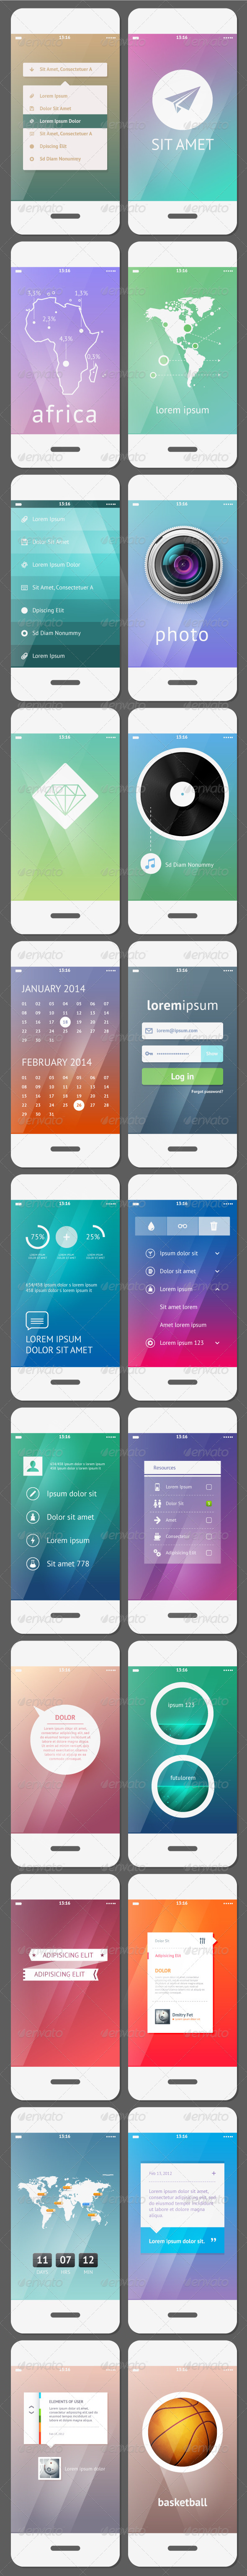 GraphicRiver Mobile User Interface Template 6374852